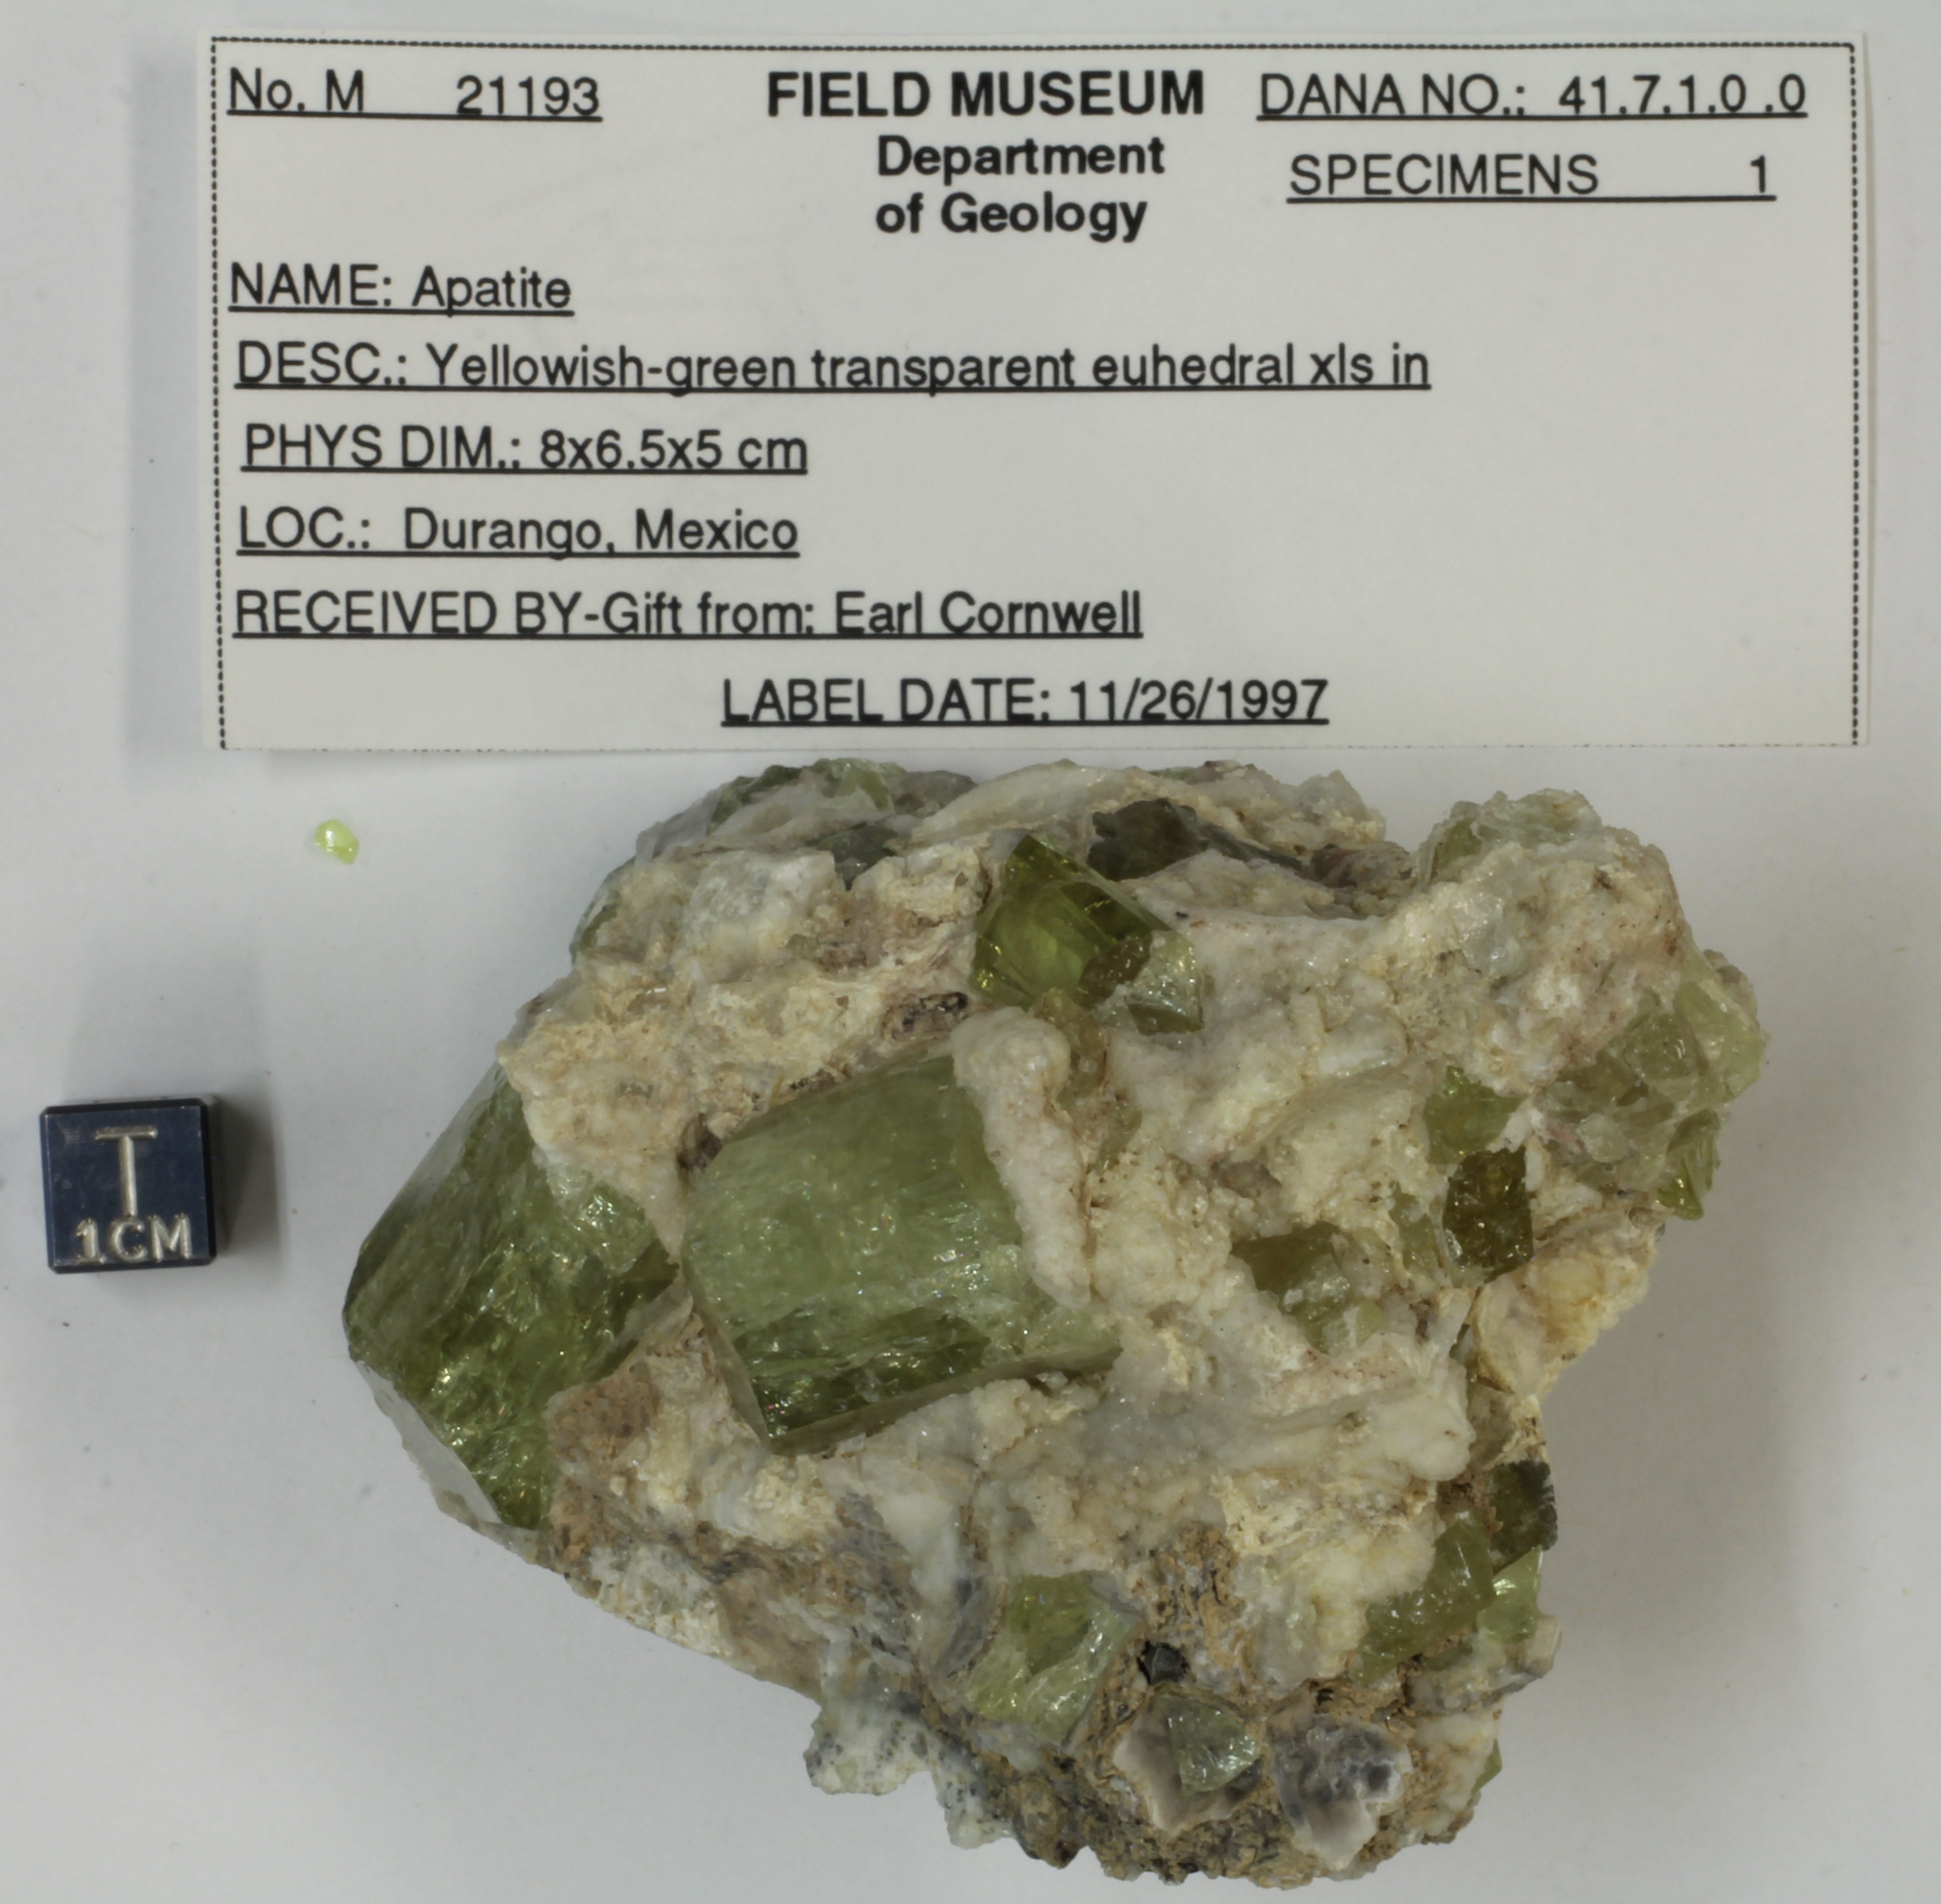 A stone with chunks of green mineral